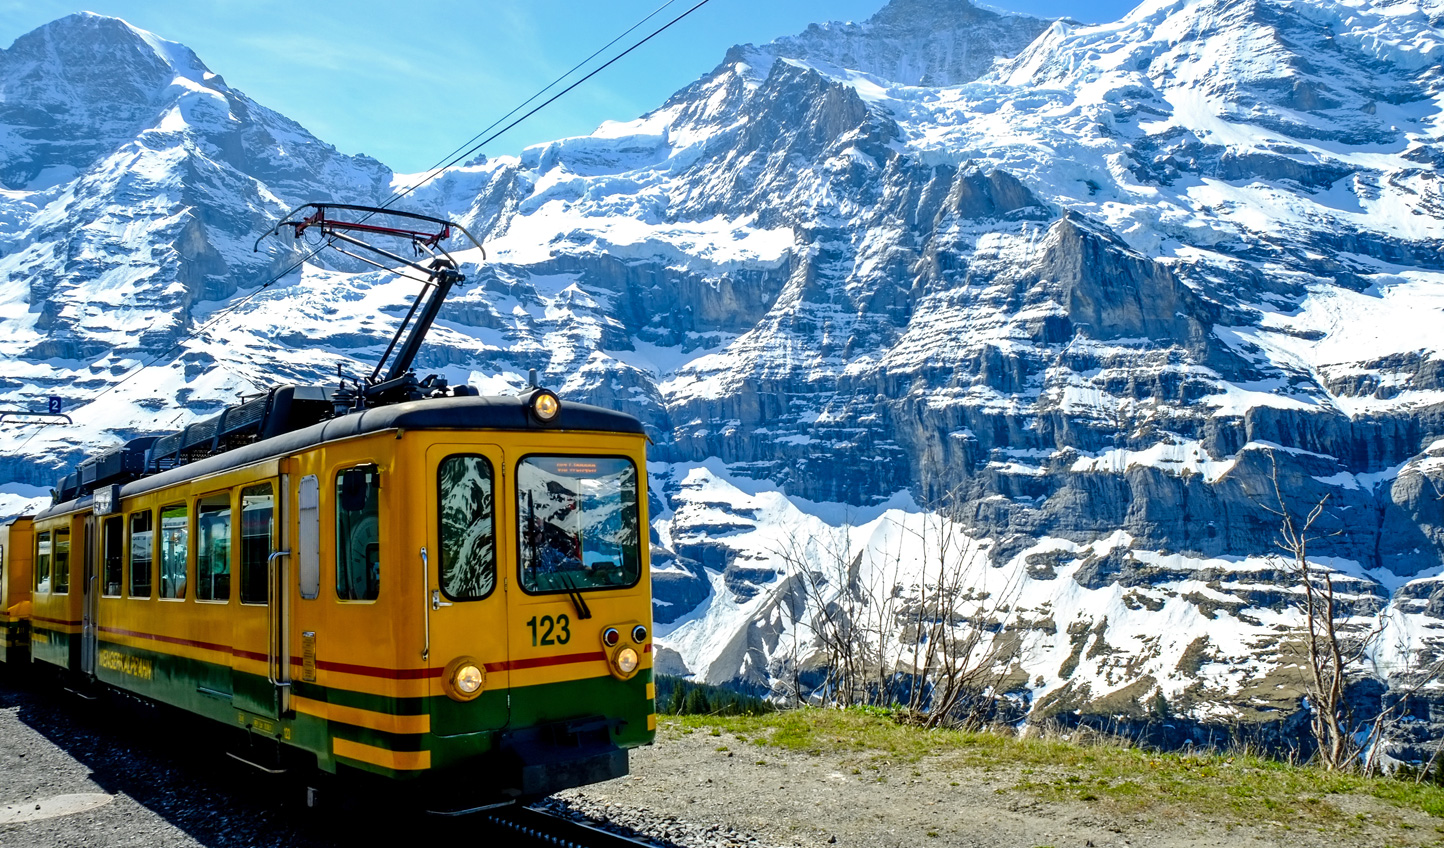 Catch Jungfraubahn up the steep mountain track to discover something extraordinary